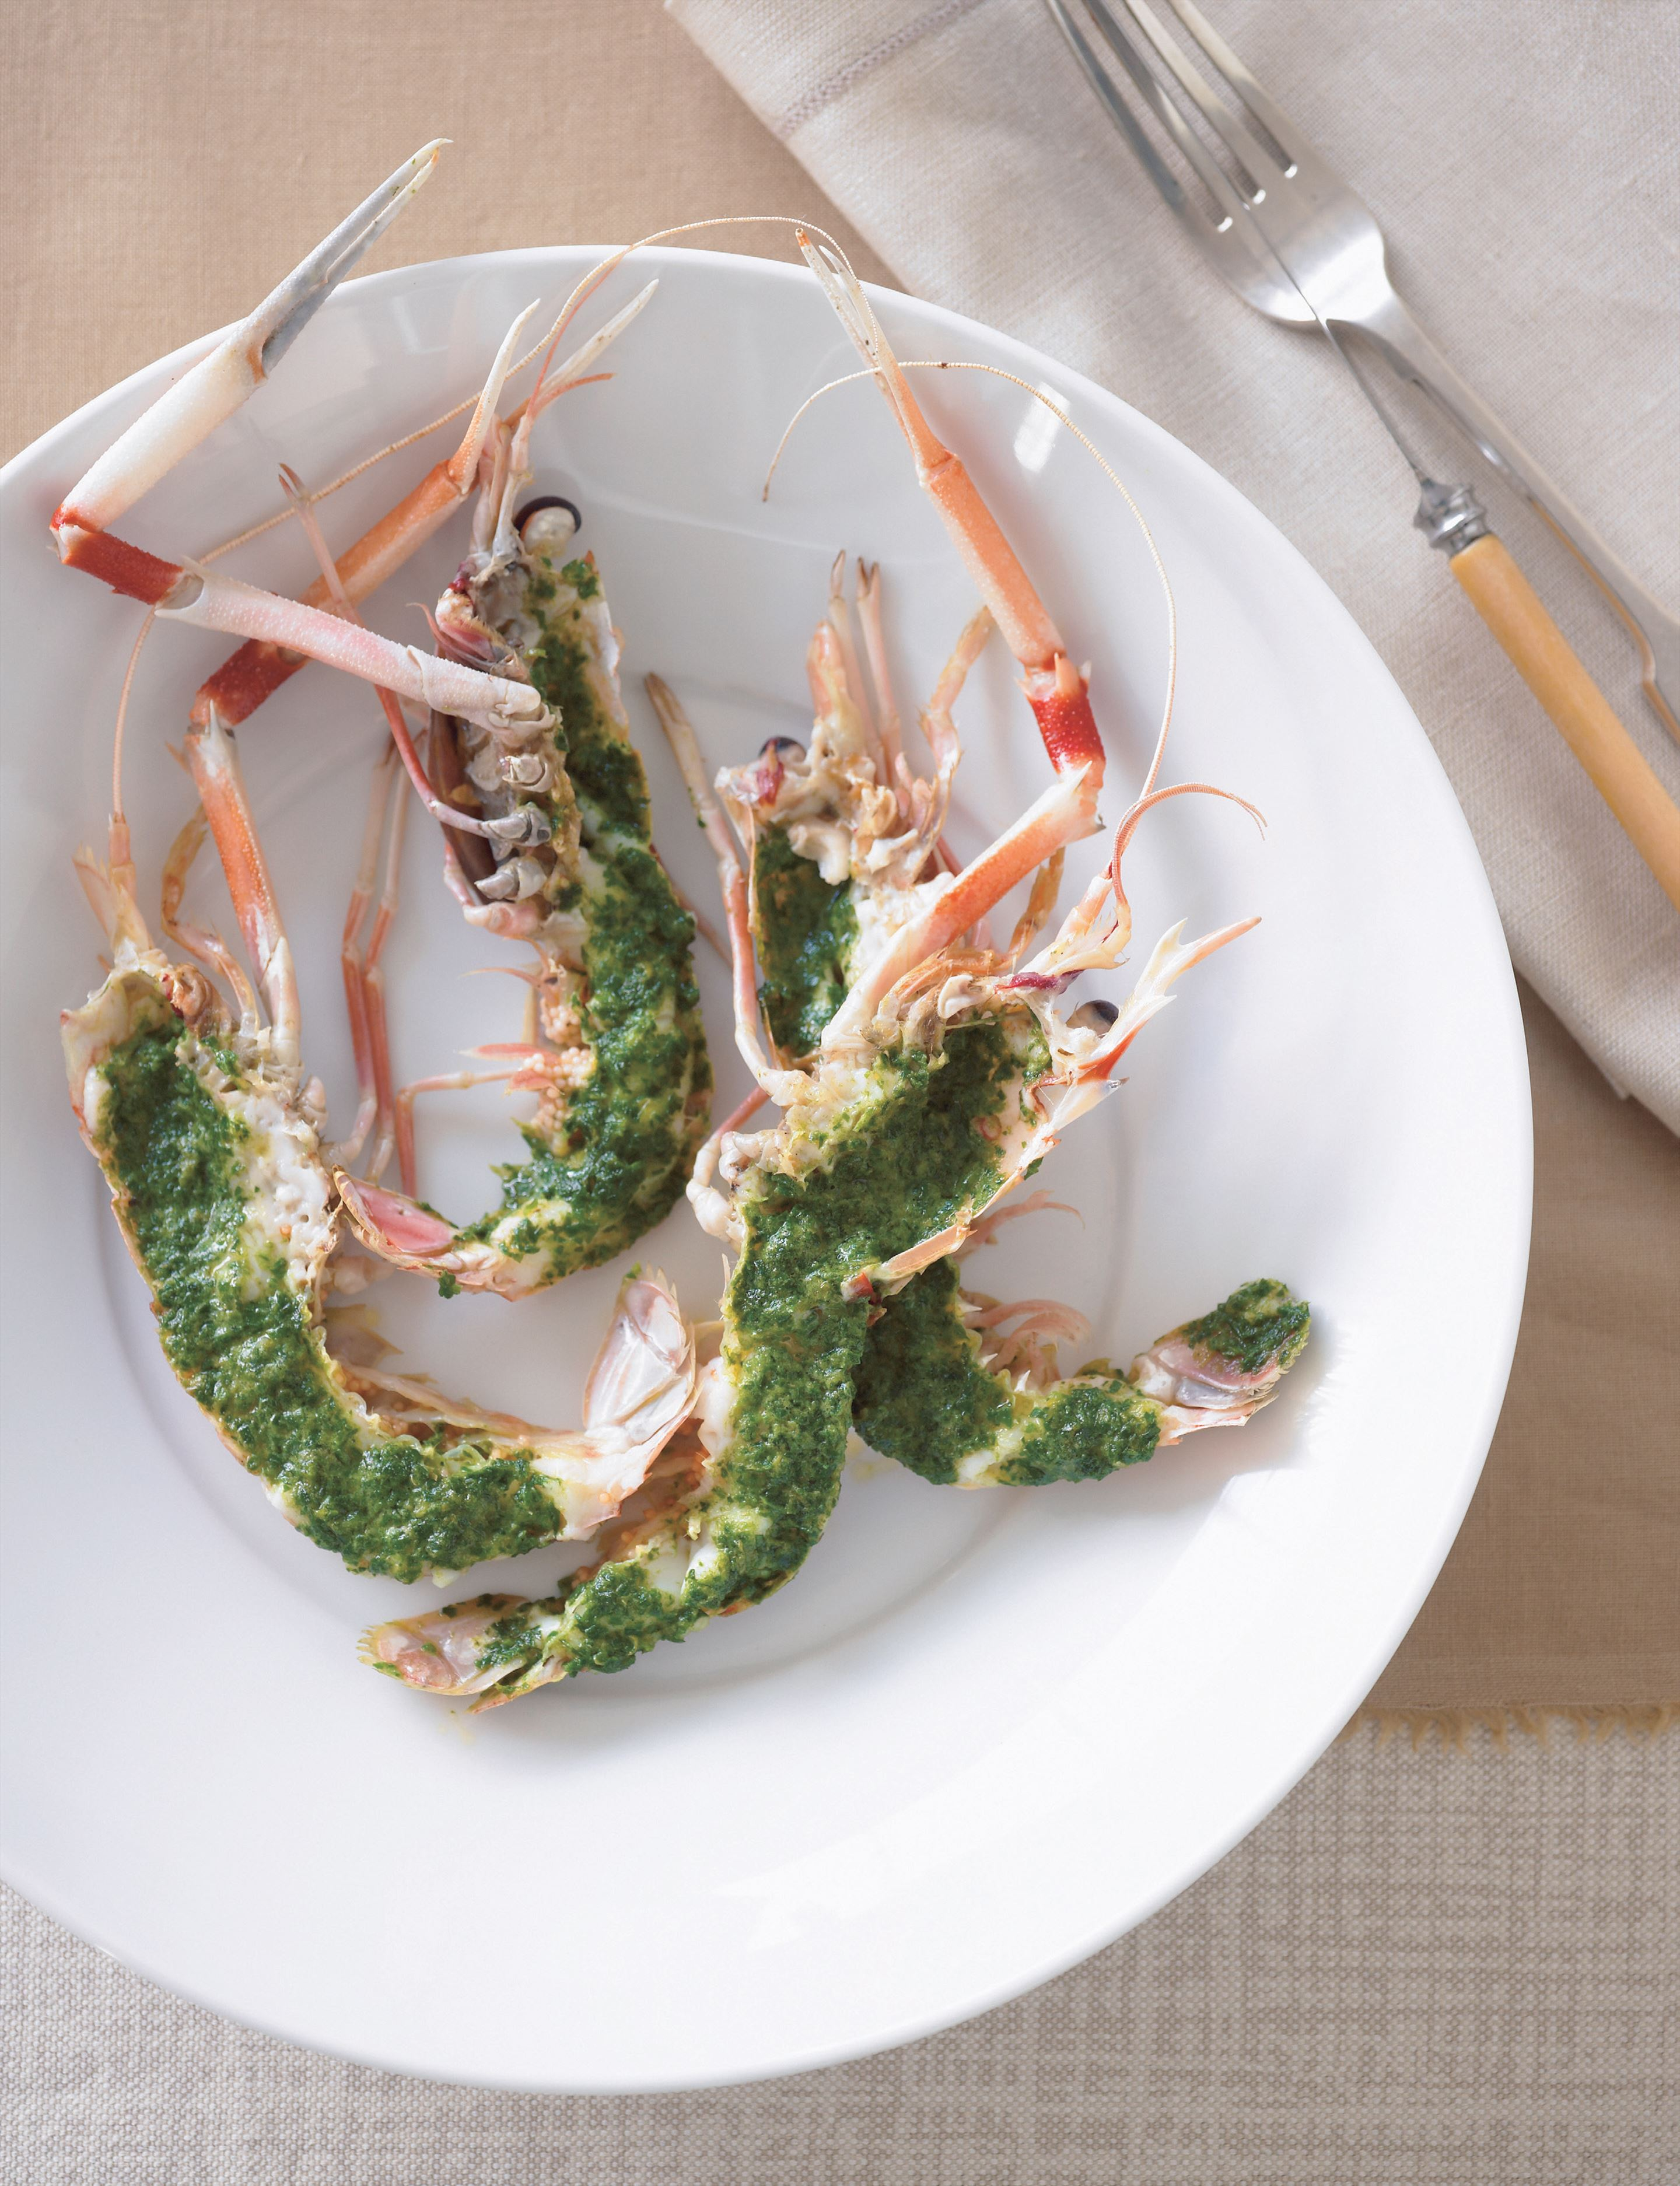 Grilled scampi tails with lemon and parsley butter